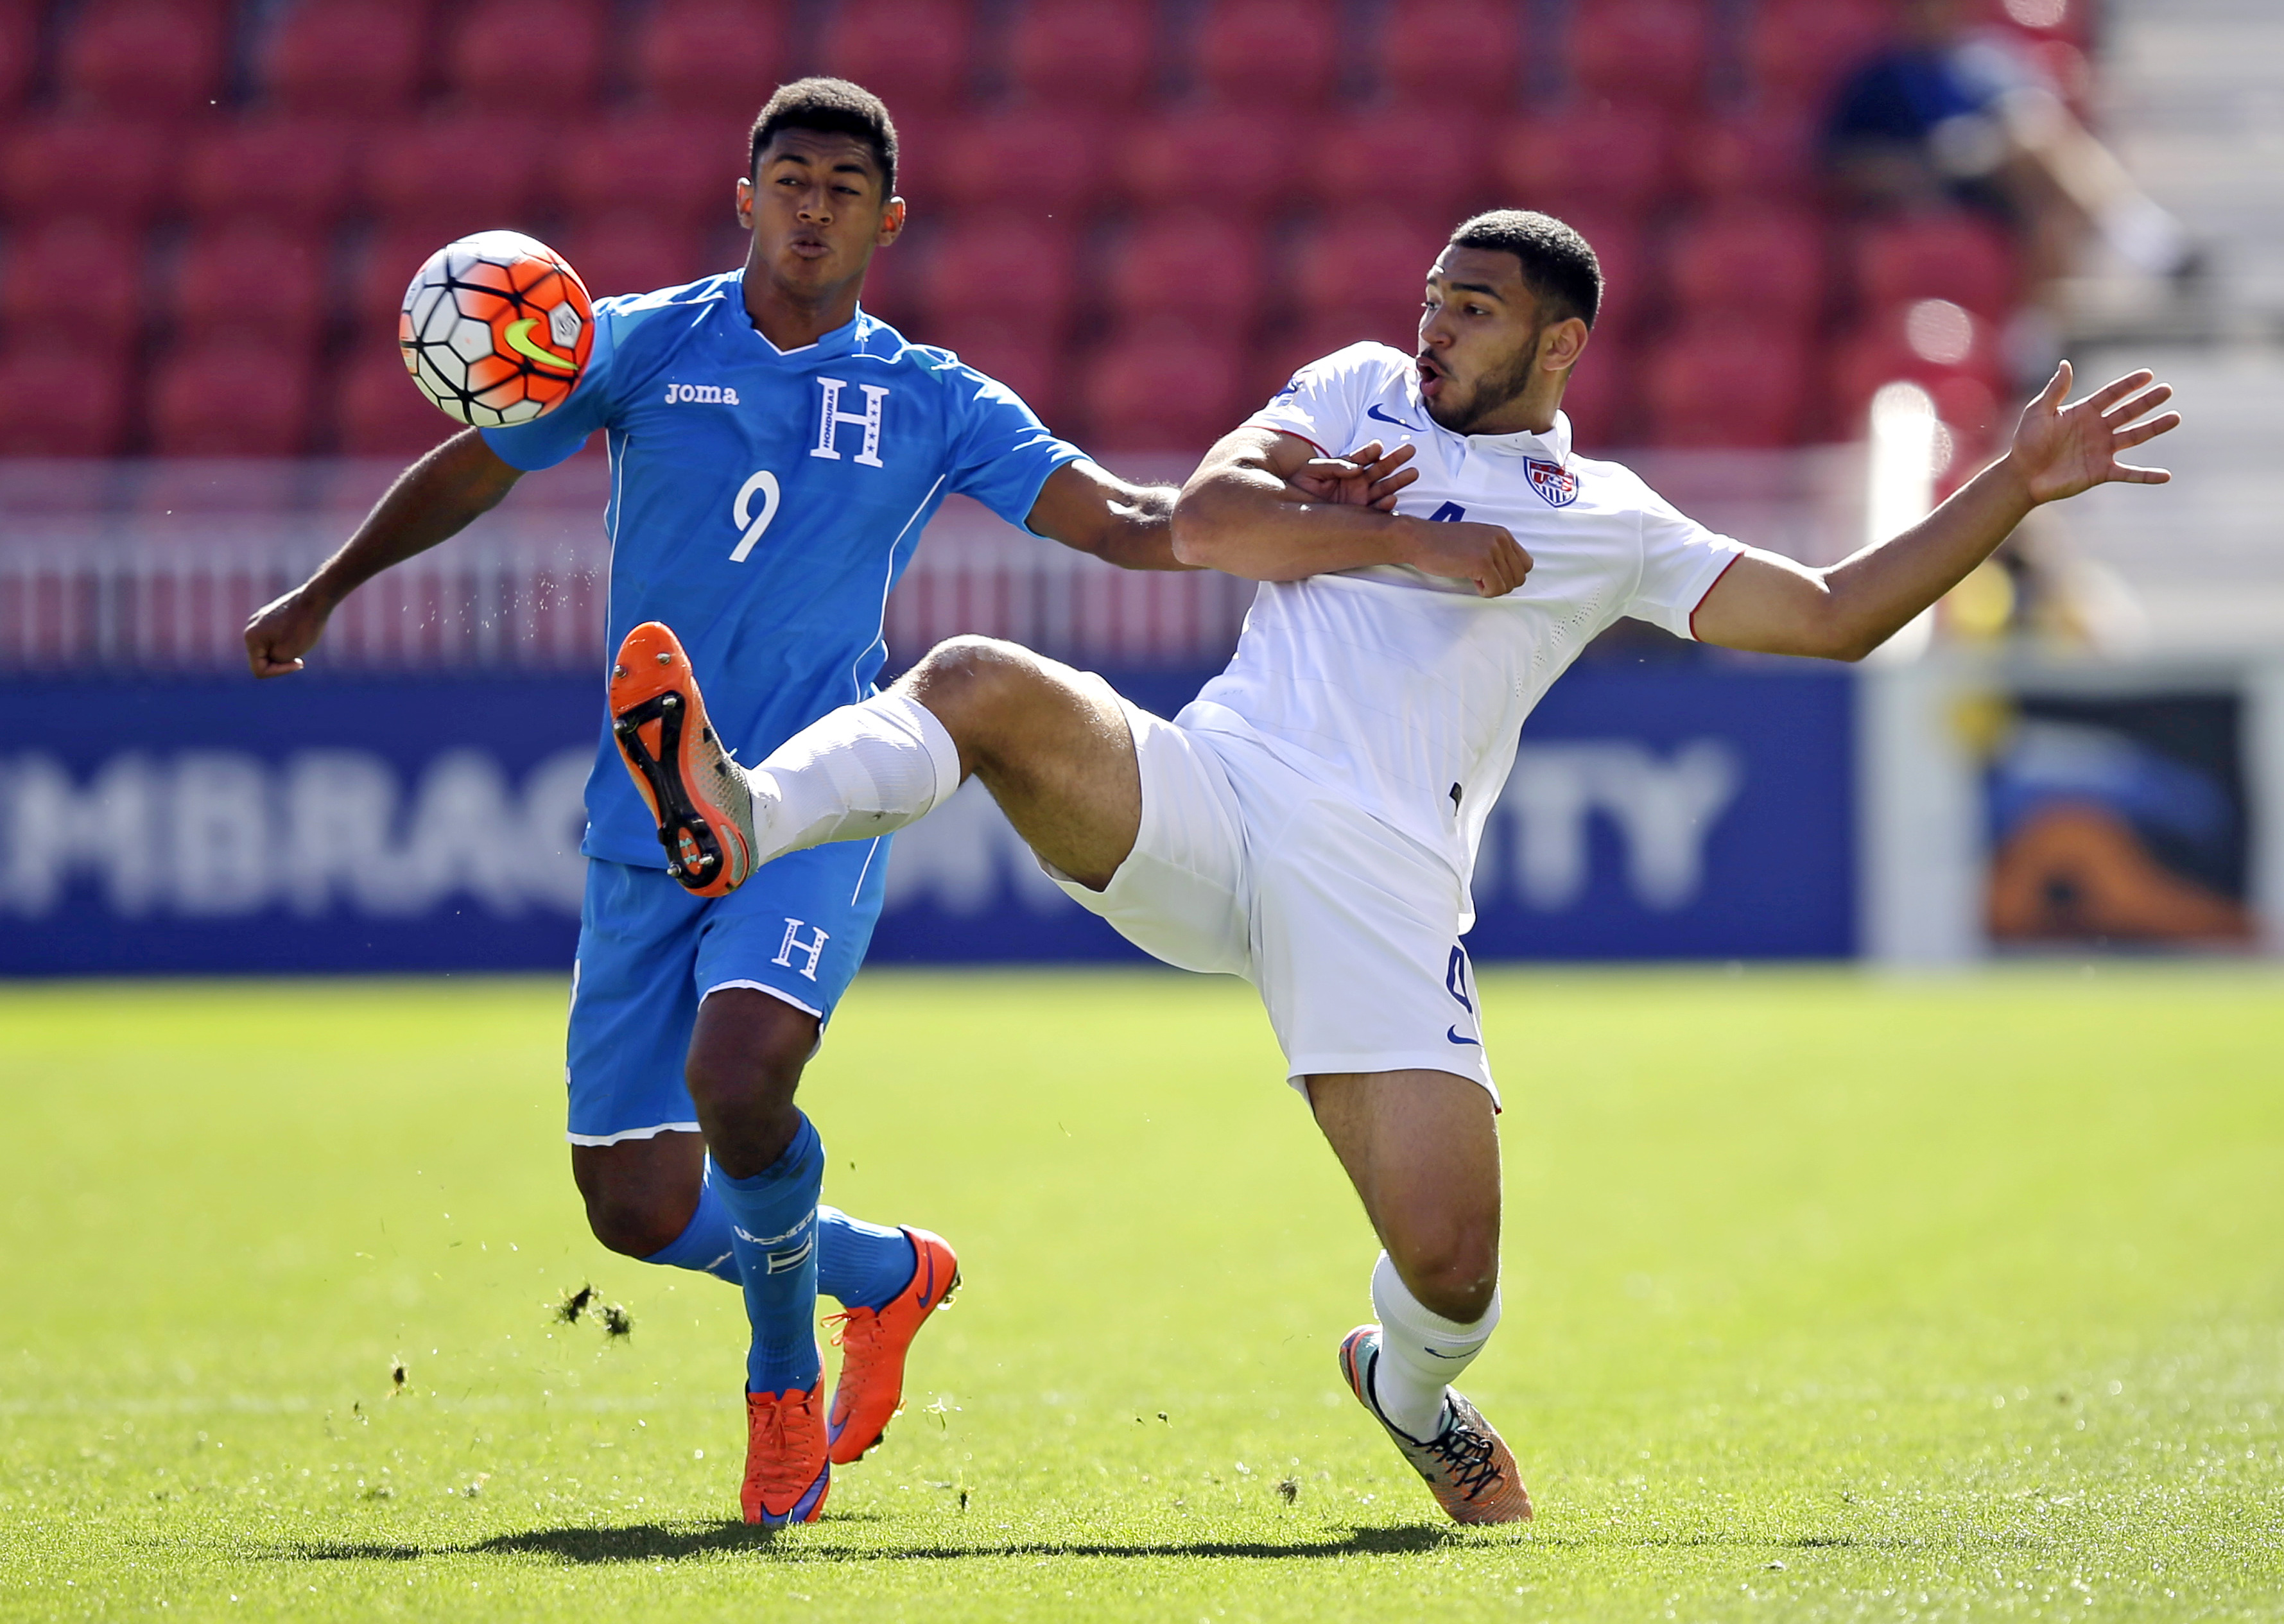 Honduras forward Antony Lozano (9) battles for the ball against United States defender Cameron Carter-Vickers (4) during the first half of a CONCACAF men's Olympics semifinal qualifying soccer match, Saturday, Oct. 10, 2015, in Sandy, Utah. (AP Photo/Rick